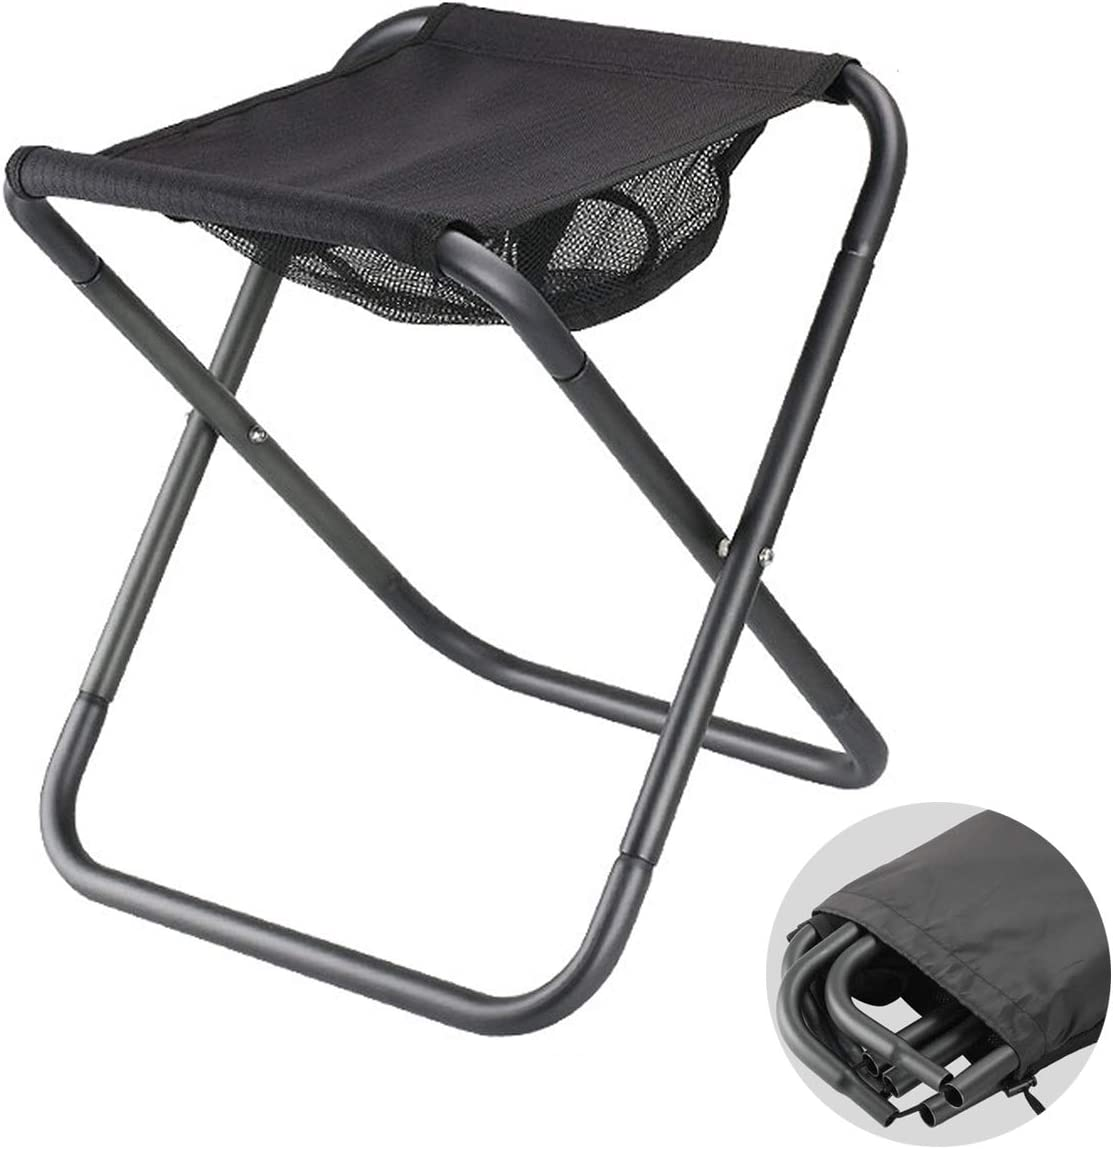 Large Size Aluminium Alloy Lightweight Load 300LB Outdoor Foldable Slacker Chair with Storage Bag for Camping Fishing Beach BBQ Travel Hiking OutyFun Portable Folding Stool